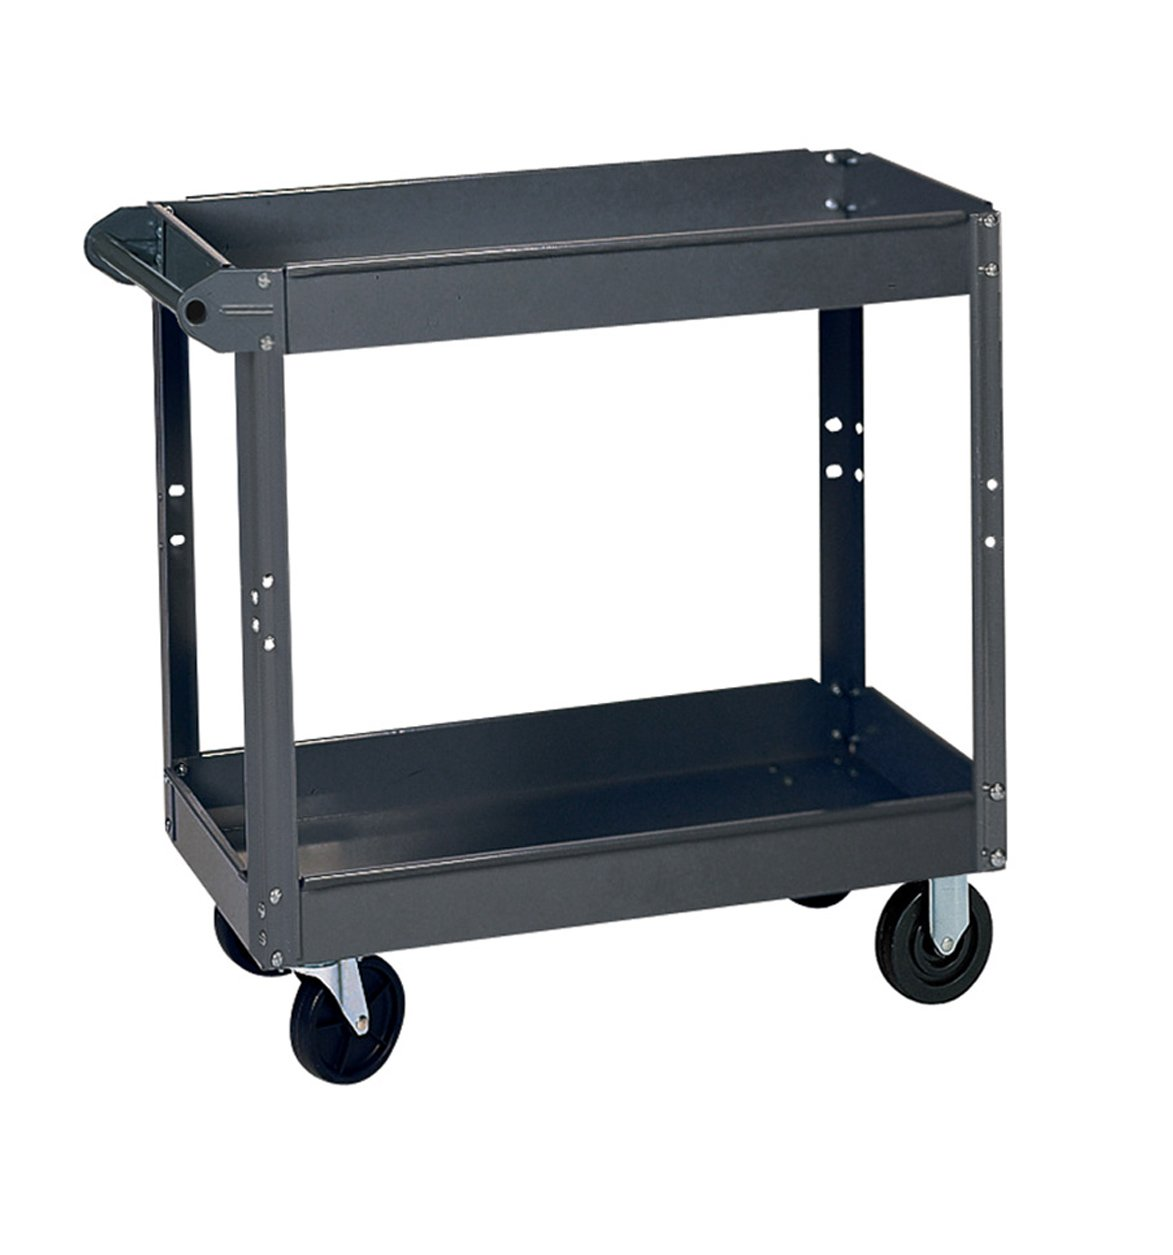 Edsal SC6000 Heavy Duty Industrial Gray Service Cart with Polypropylene Casters, 2 Shelves made of 18 Gauge Steel, 800 lb. Capacity, 32'' Height x 24'' Width x 36'' Depth